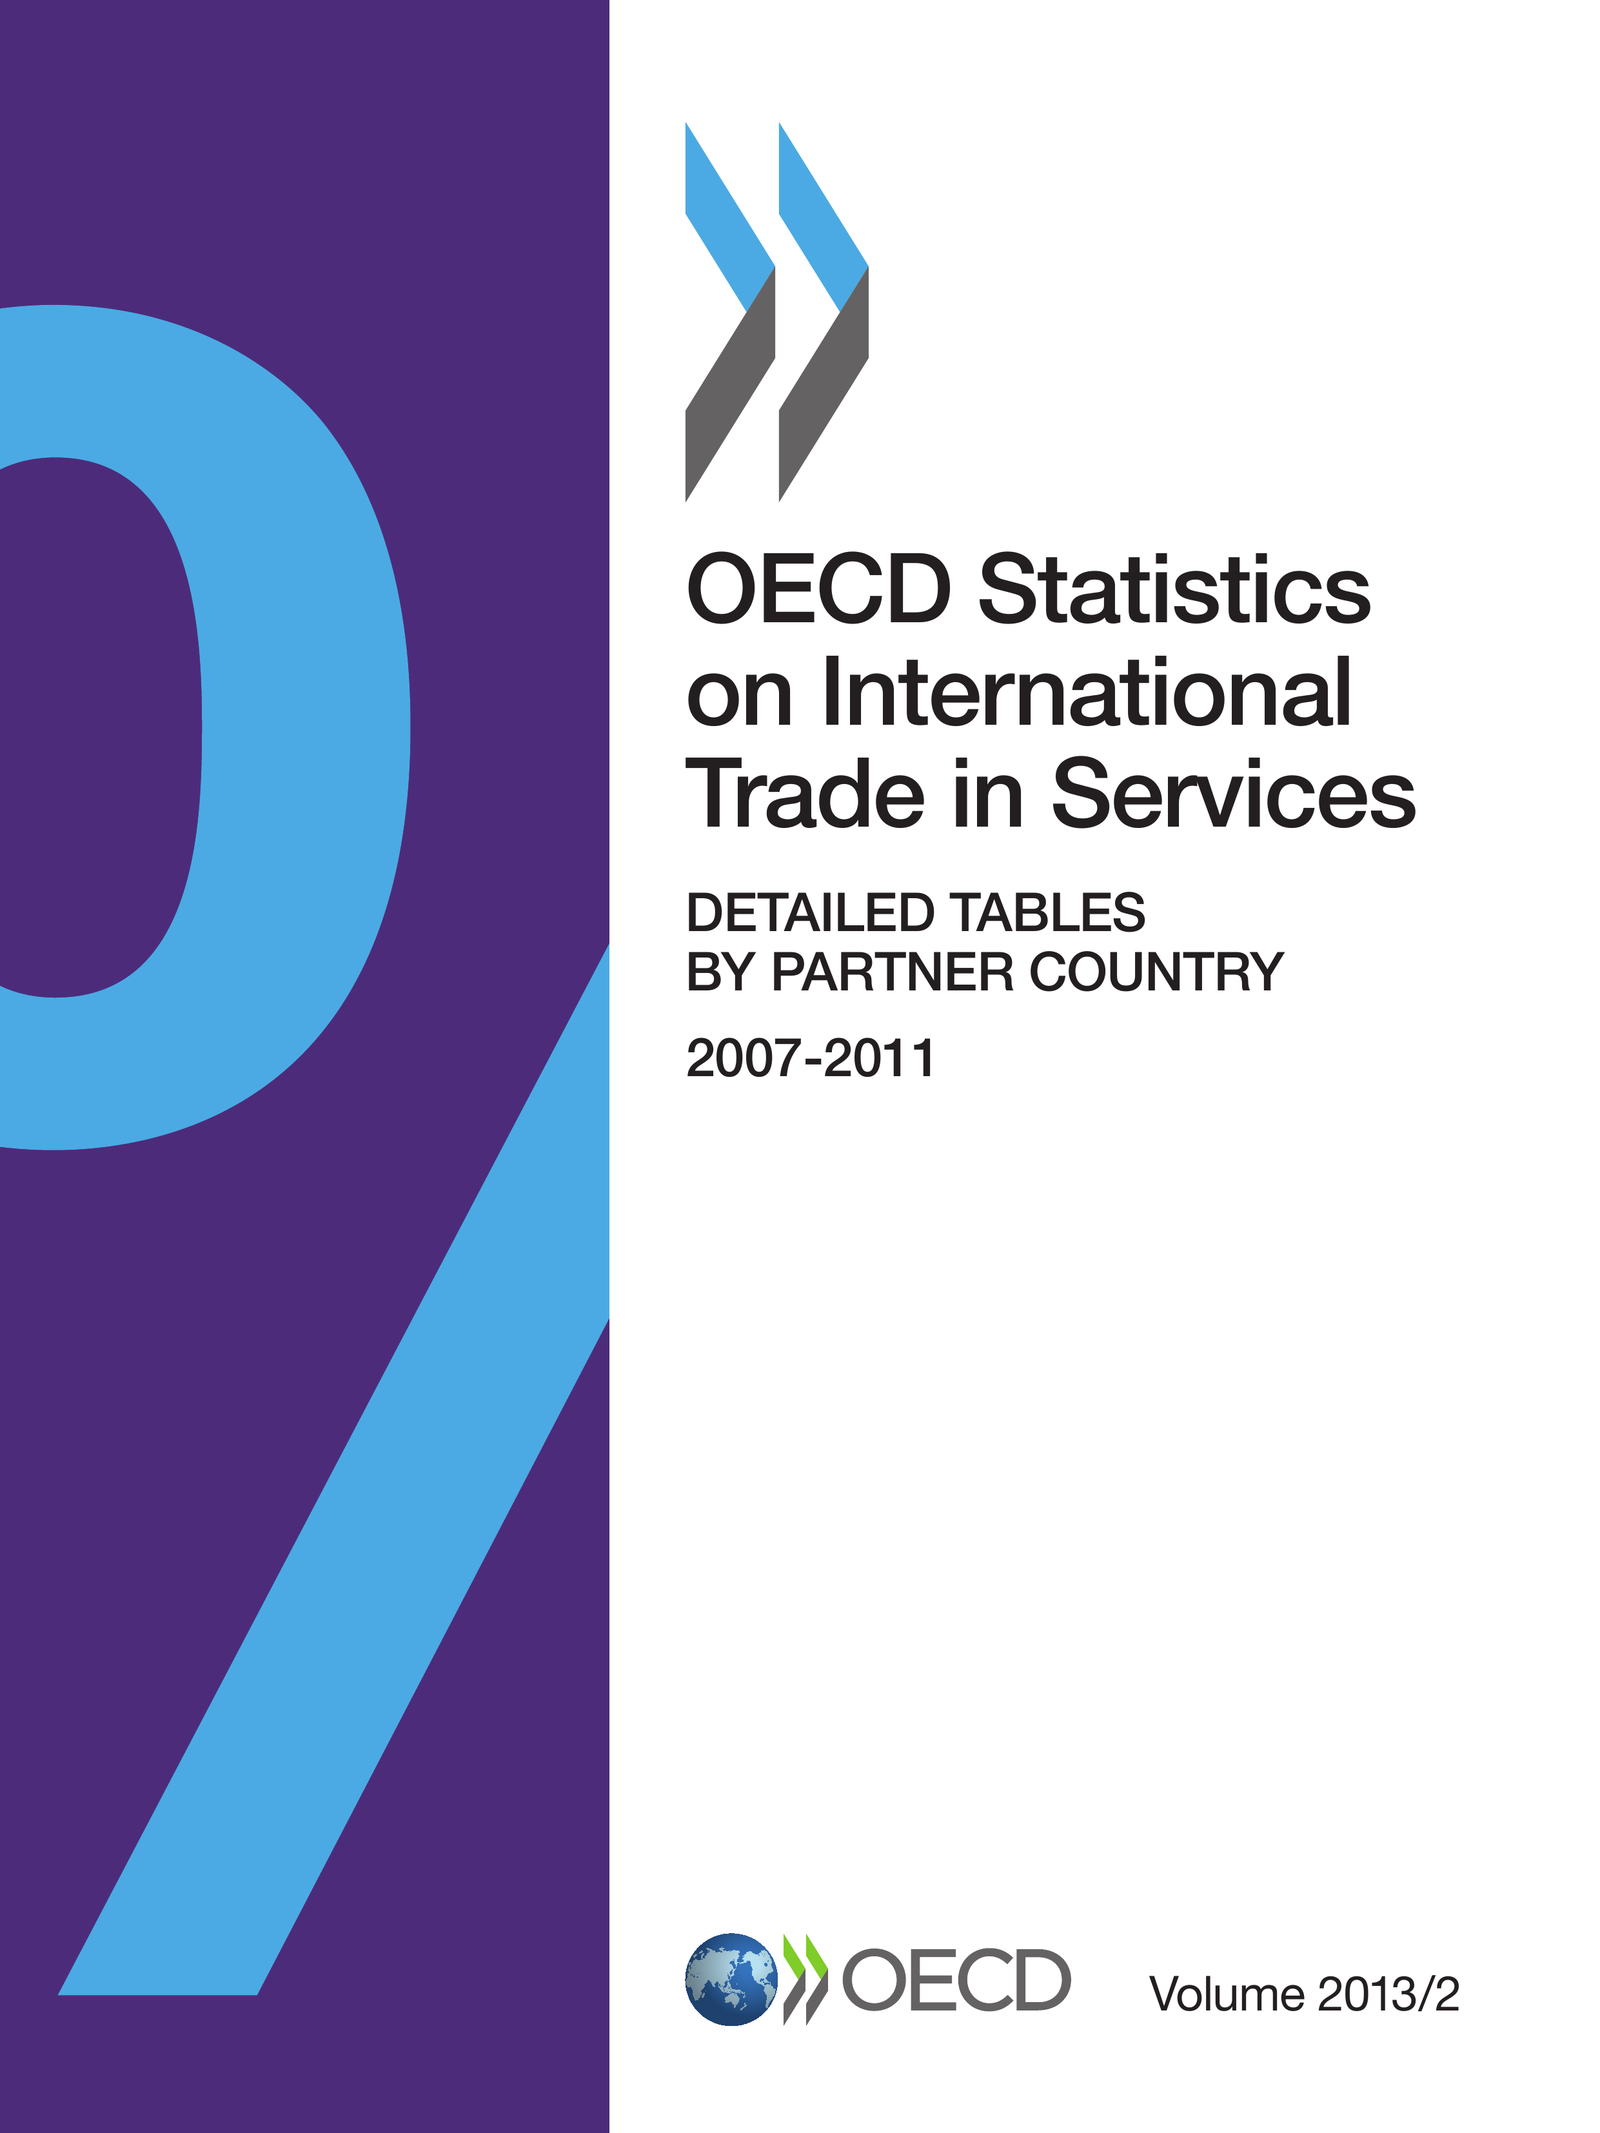 OECD Statistics on International Trade in Services, Volume 2013 Issue 2